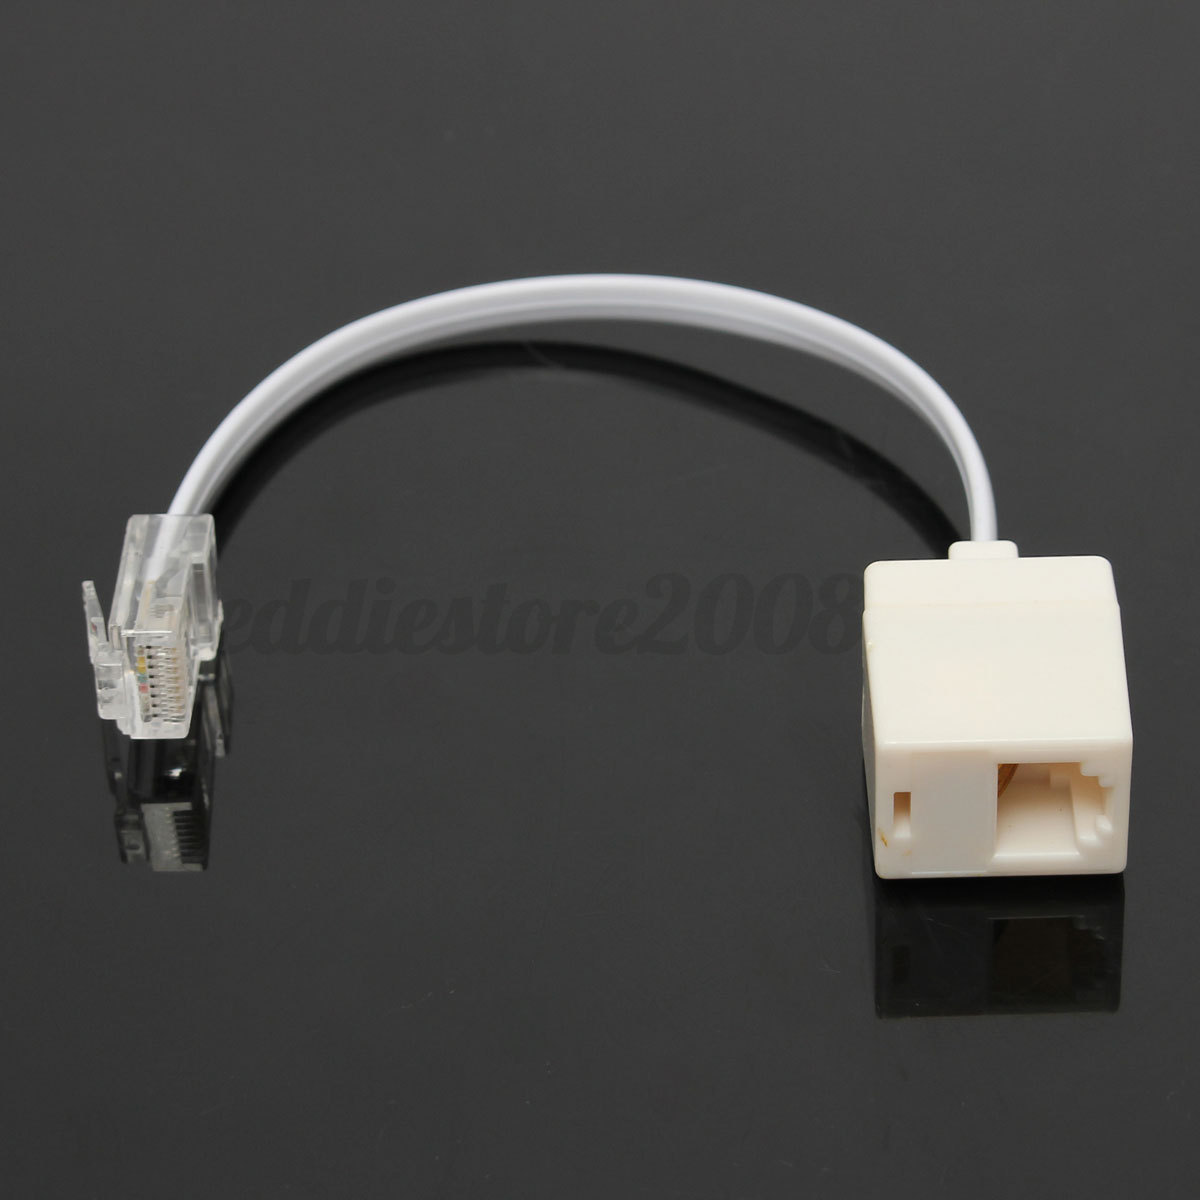 on q rj45 phone jack wiring diagram rj11 6p4c female to ethernet rj45 8p8c male f/m adapter ... rj45 phone wiring #10